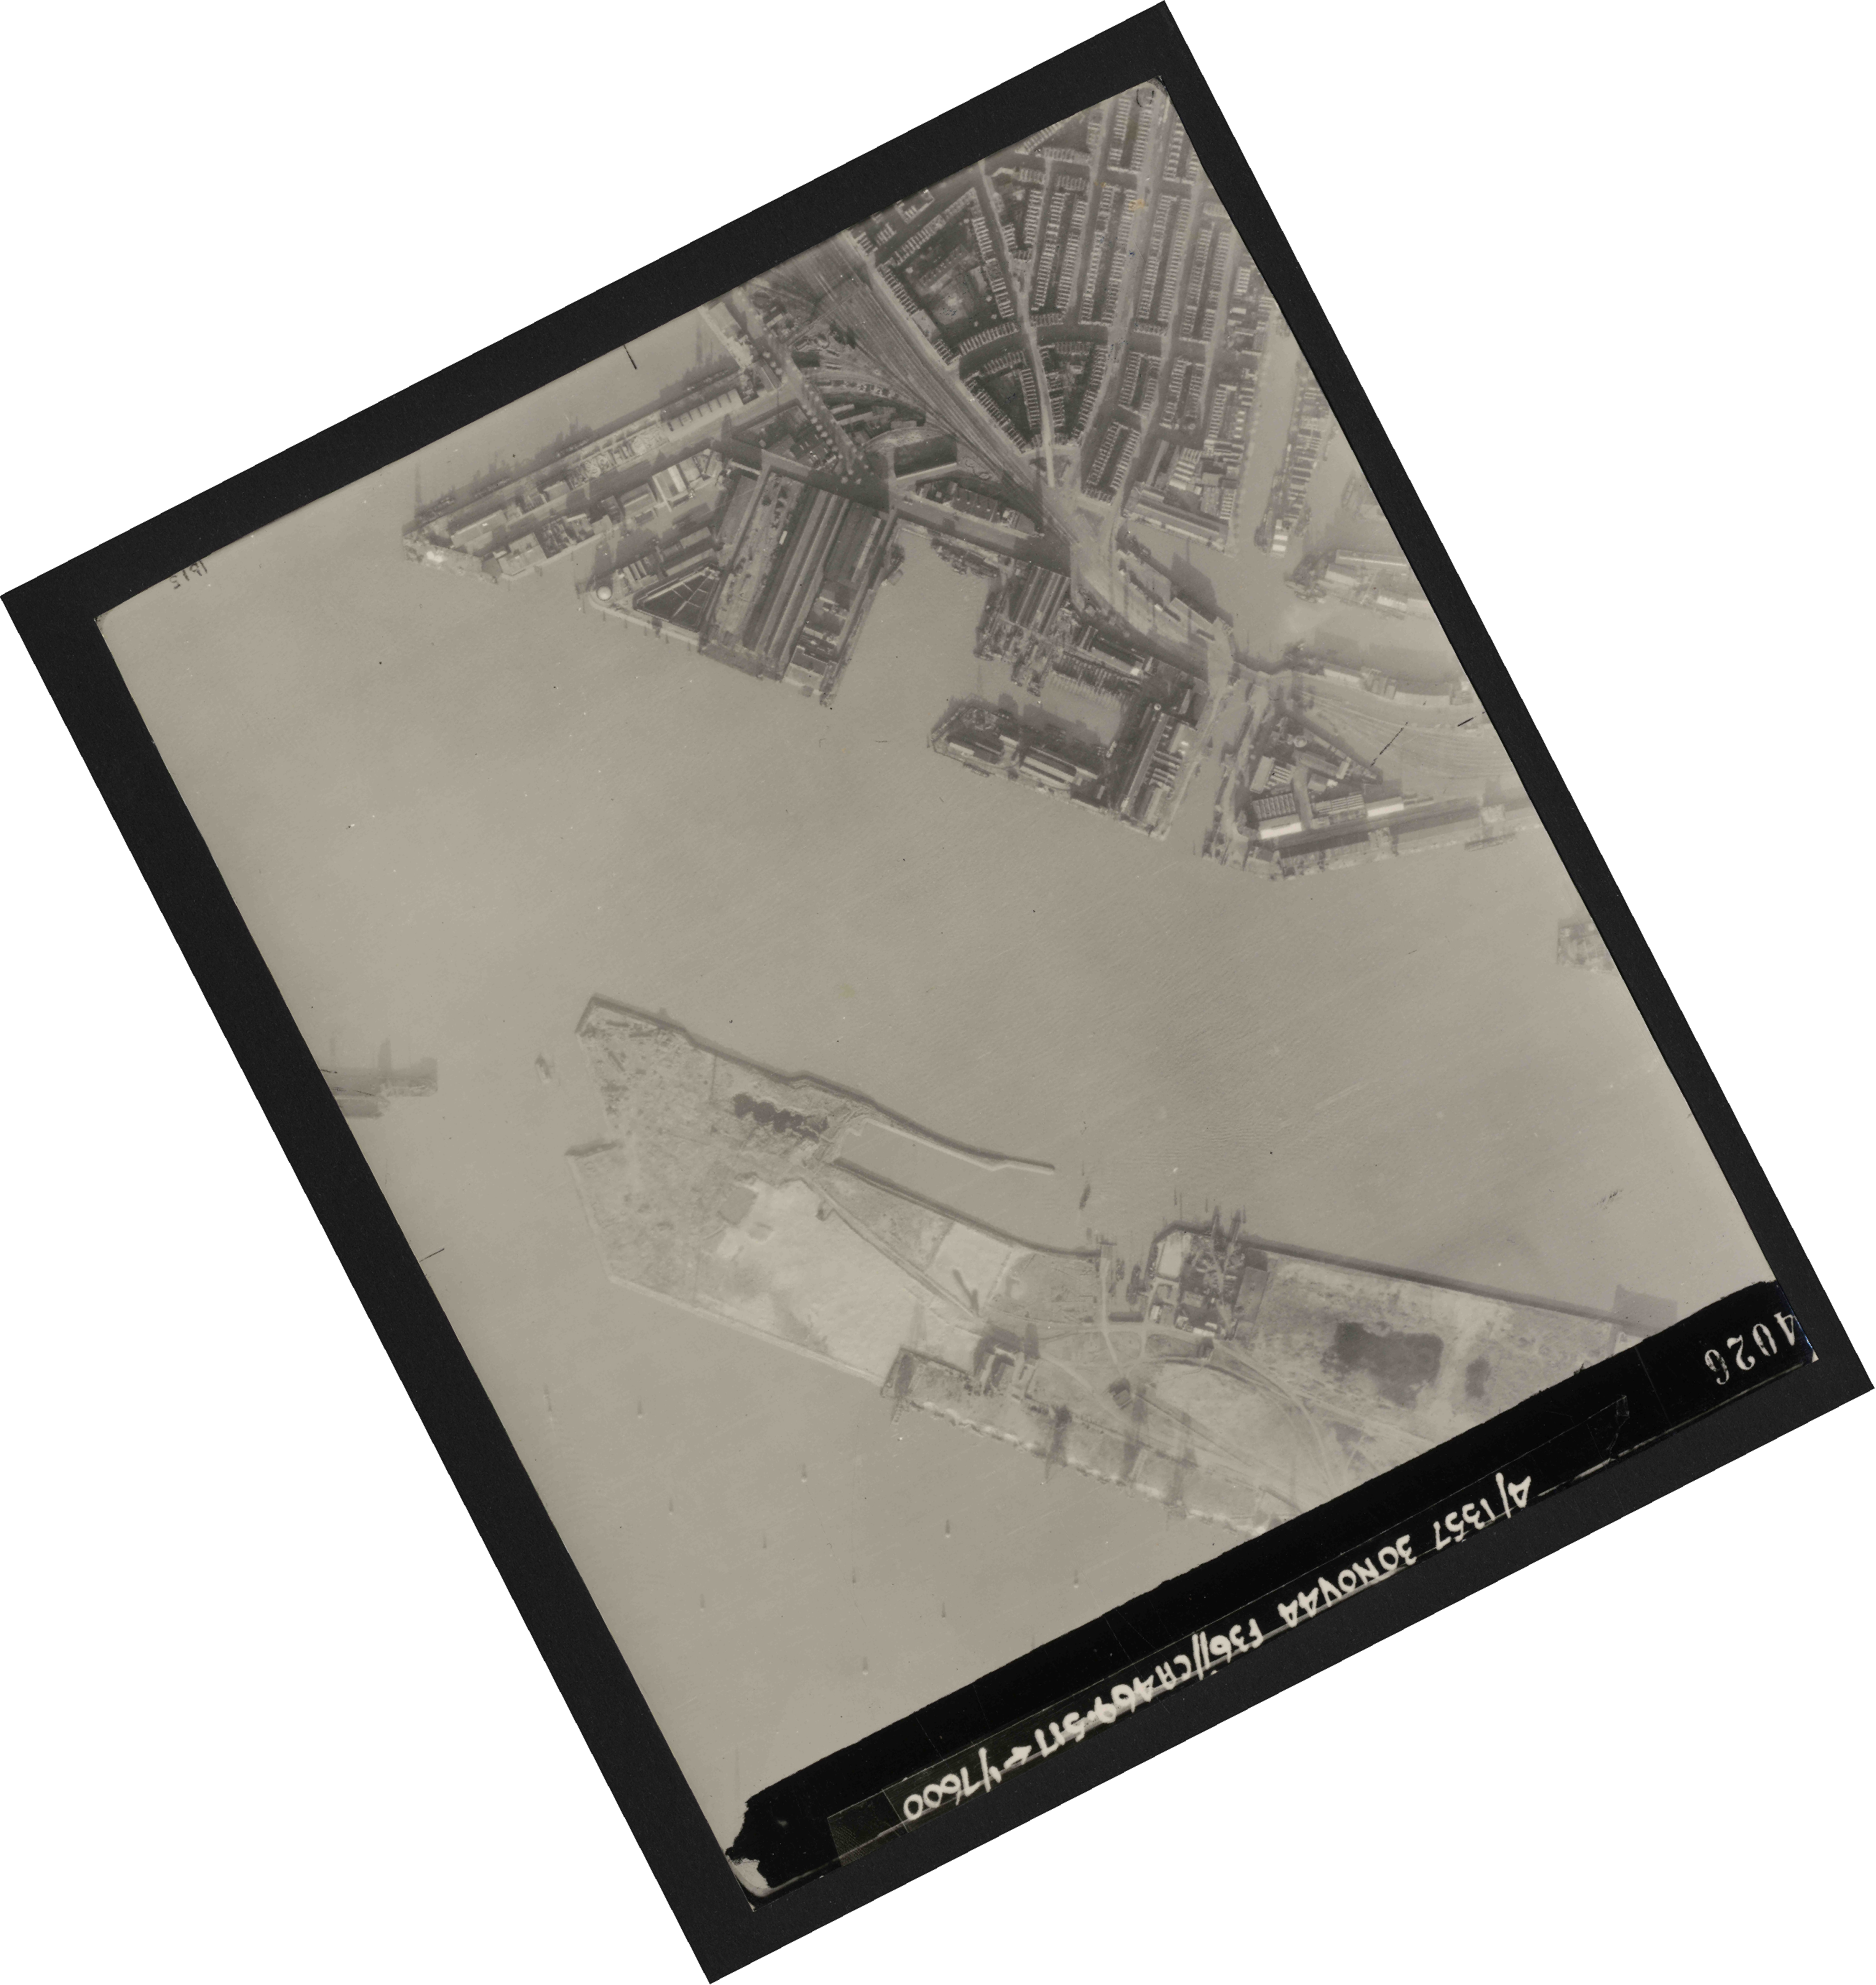 Collection RAF aerial photos 1940-1945 - flight 259, run 04, photo 4026